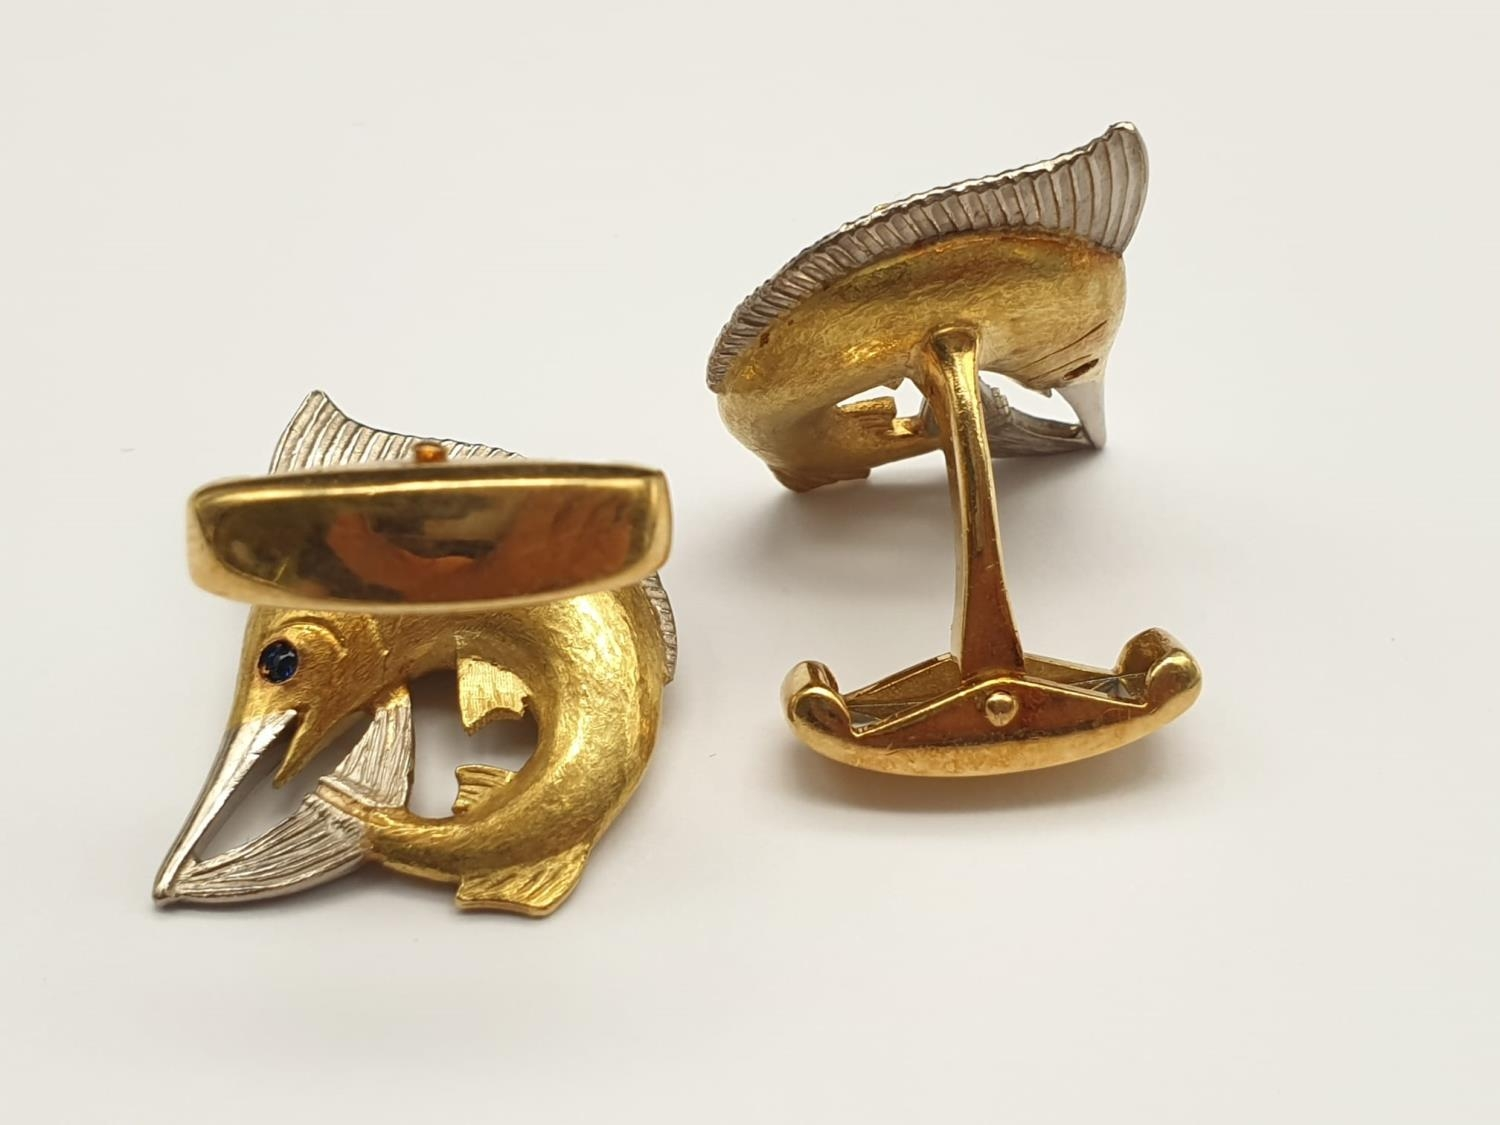 Exquisite Pair of Hand-Made 18K White and Yellow Gold Sailfish Cufflinks with Sapphire Stone Eyes. - Image 4 of 5